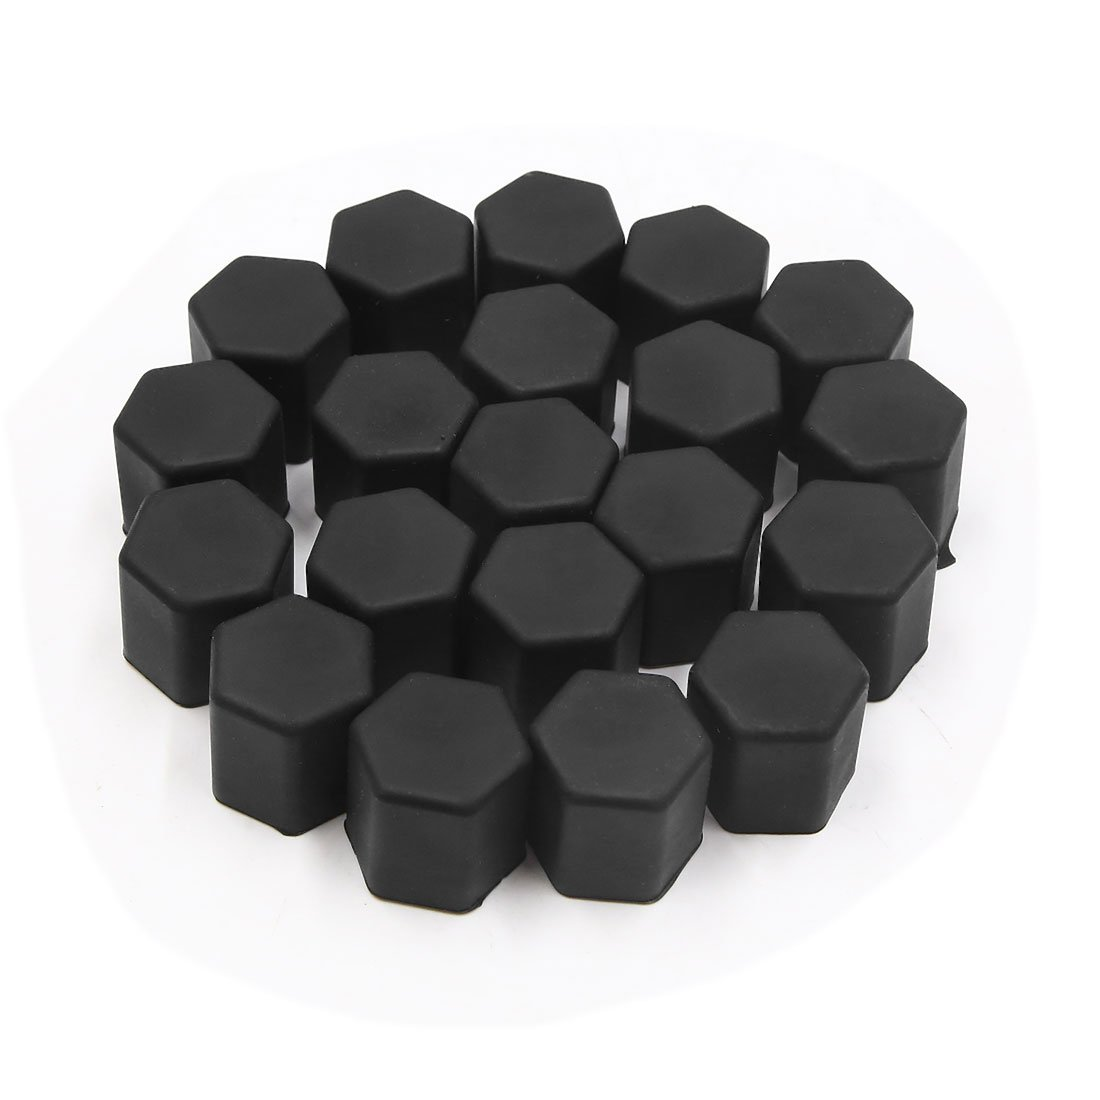 uxcell 20pcs 15mm Rubber Car Wheel Tire Tyre Nut Screw Cover Caps Hub Protector Black